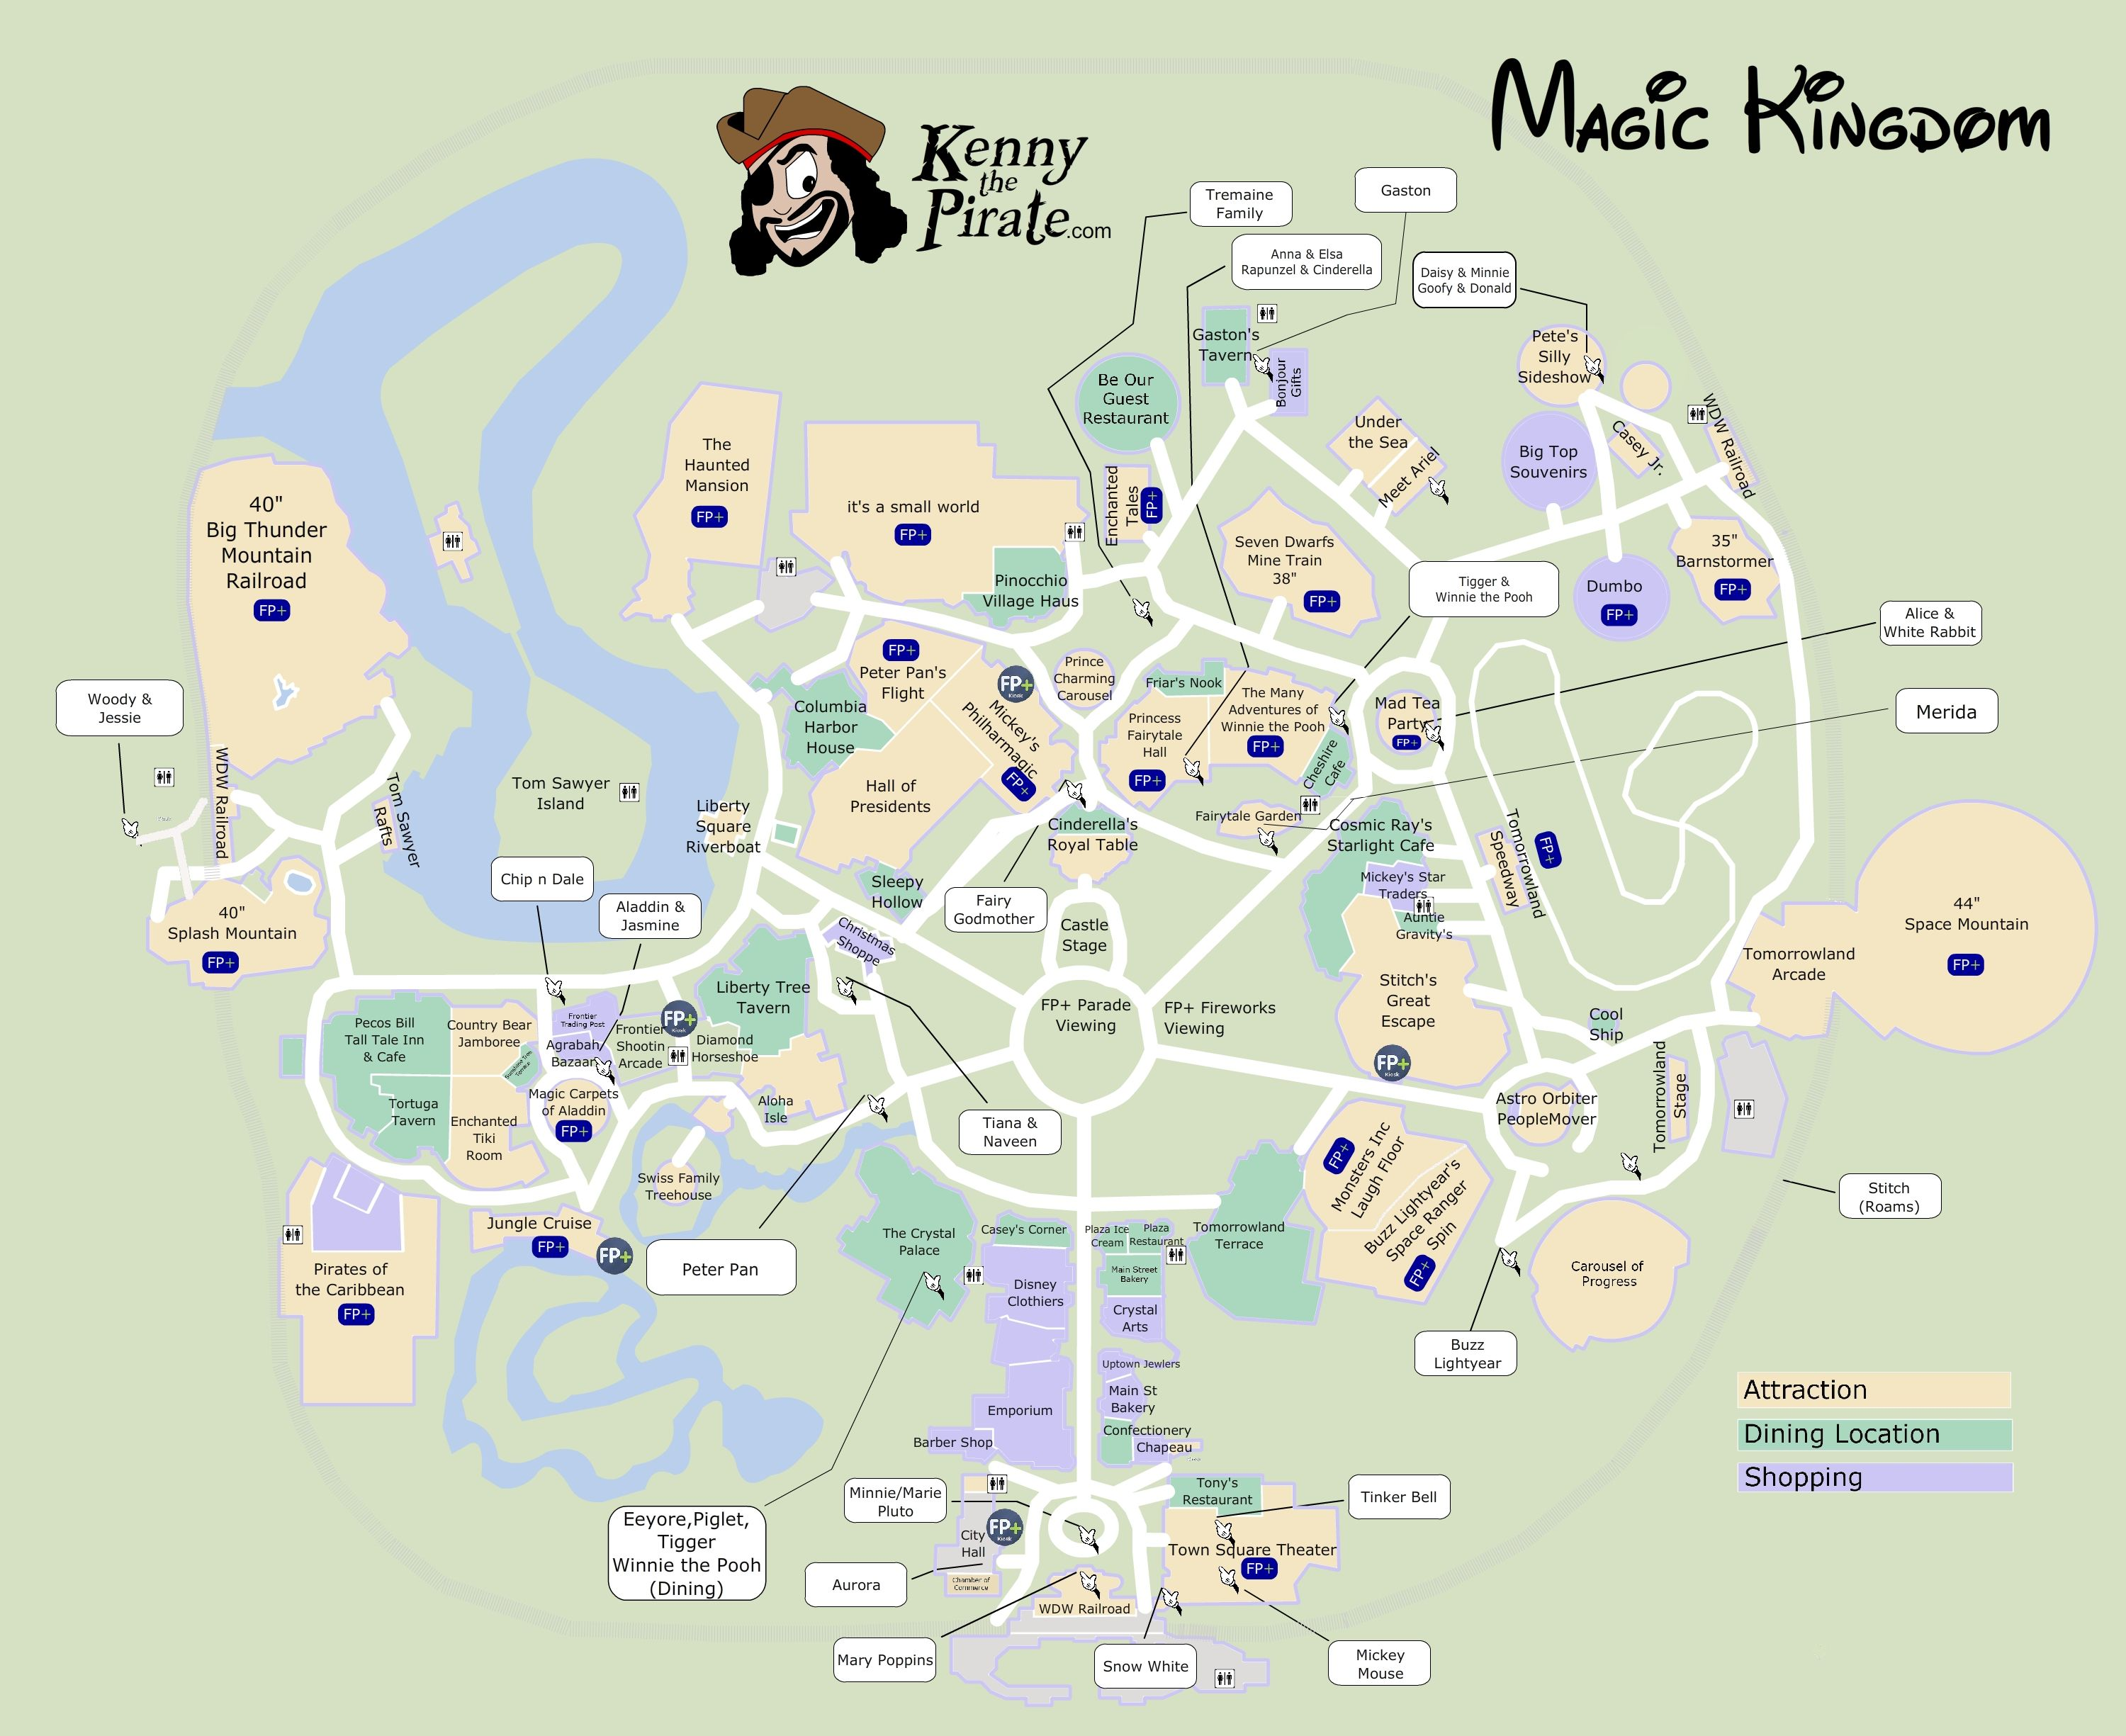 Great Map Of Magic Kingdom With Fastpass Plus Locations, Rides, Shows,  Characters, Dining And Shopping Locations   From KennythePirate #dvcrentals